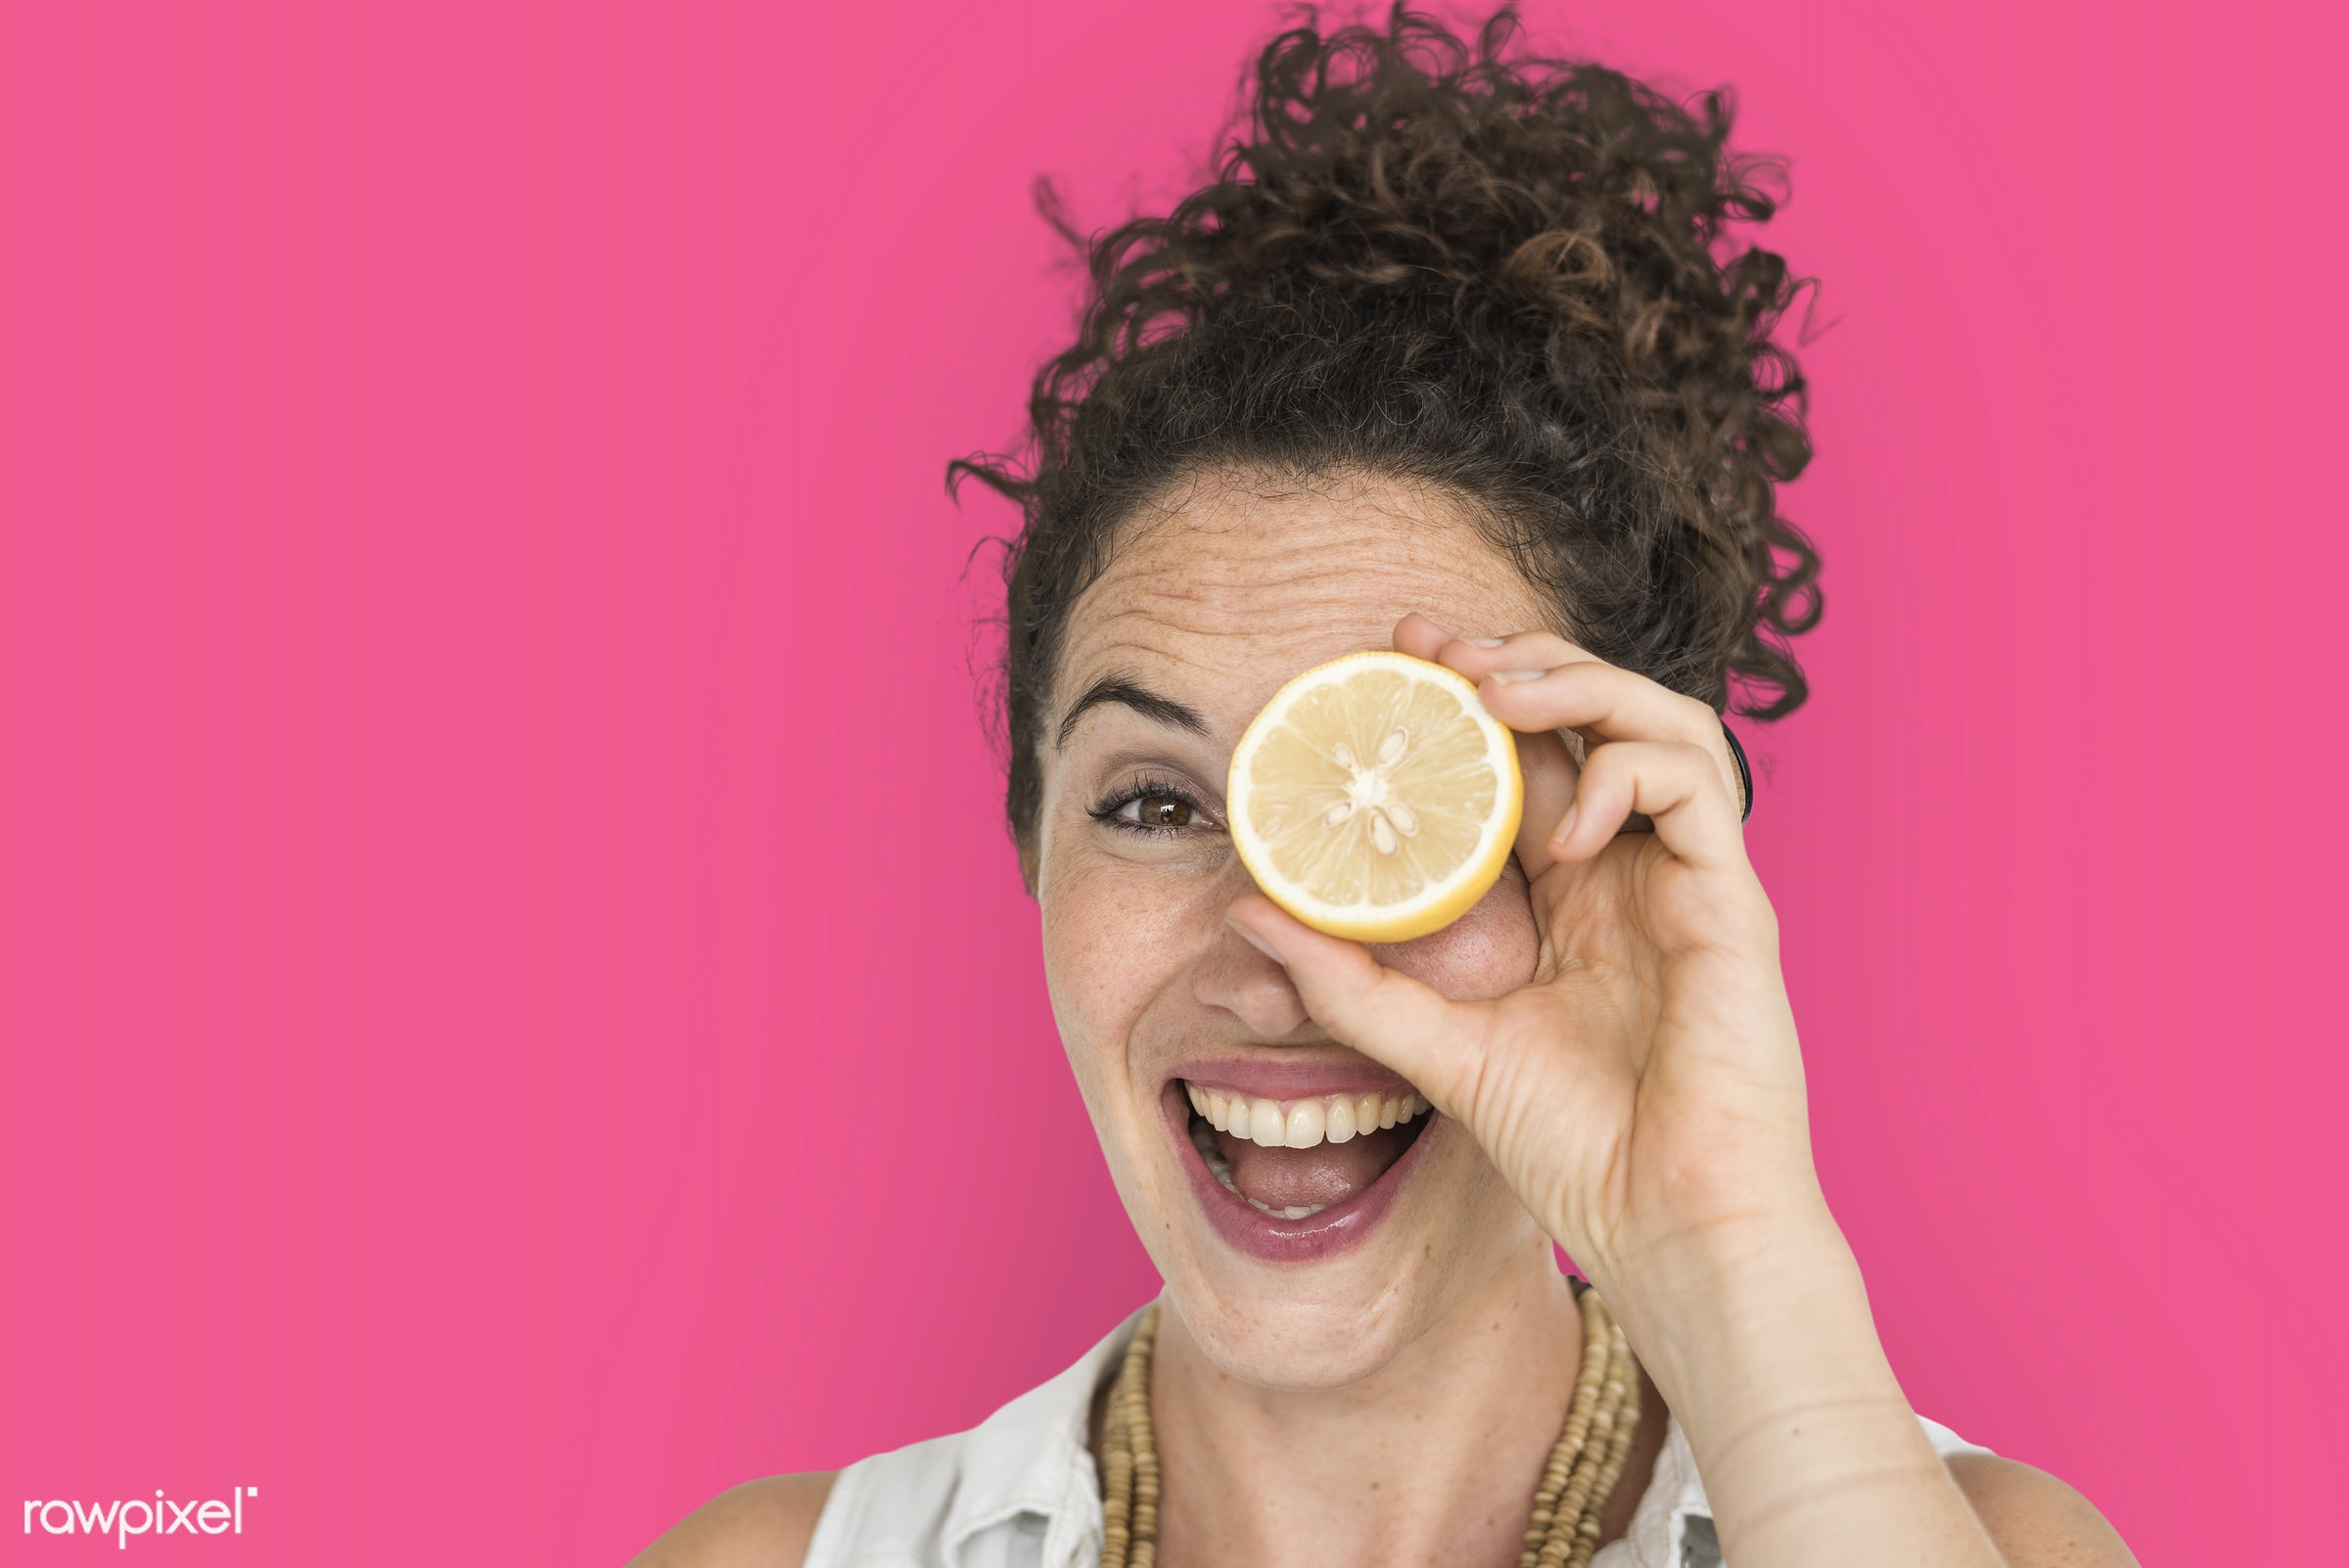 studio, expression, person, people, eyes, cover, woman, pink, cheerful, smiling, isolated, fruit, human hand, happiness,...